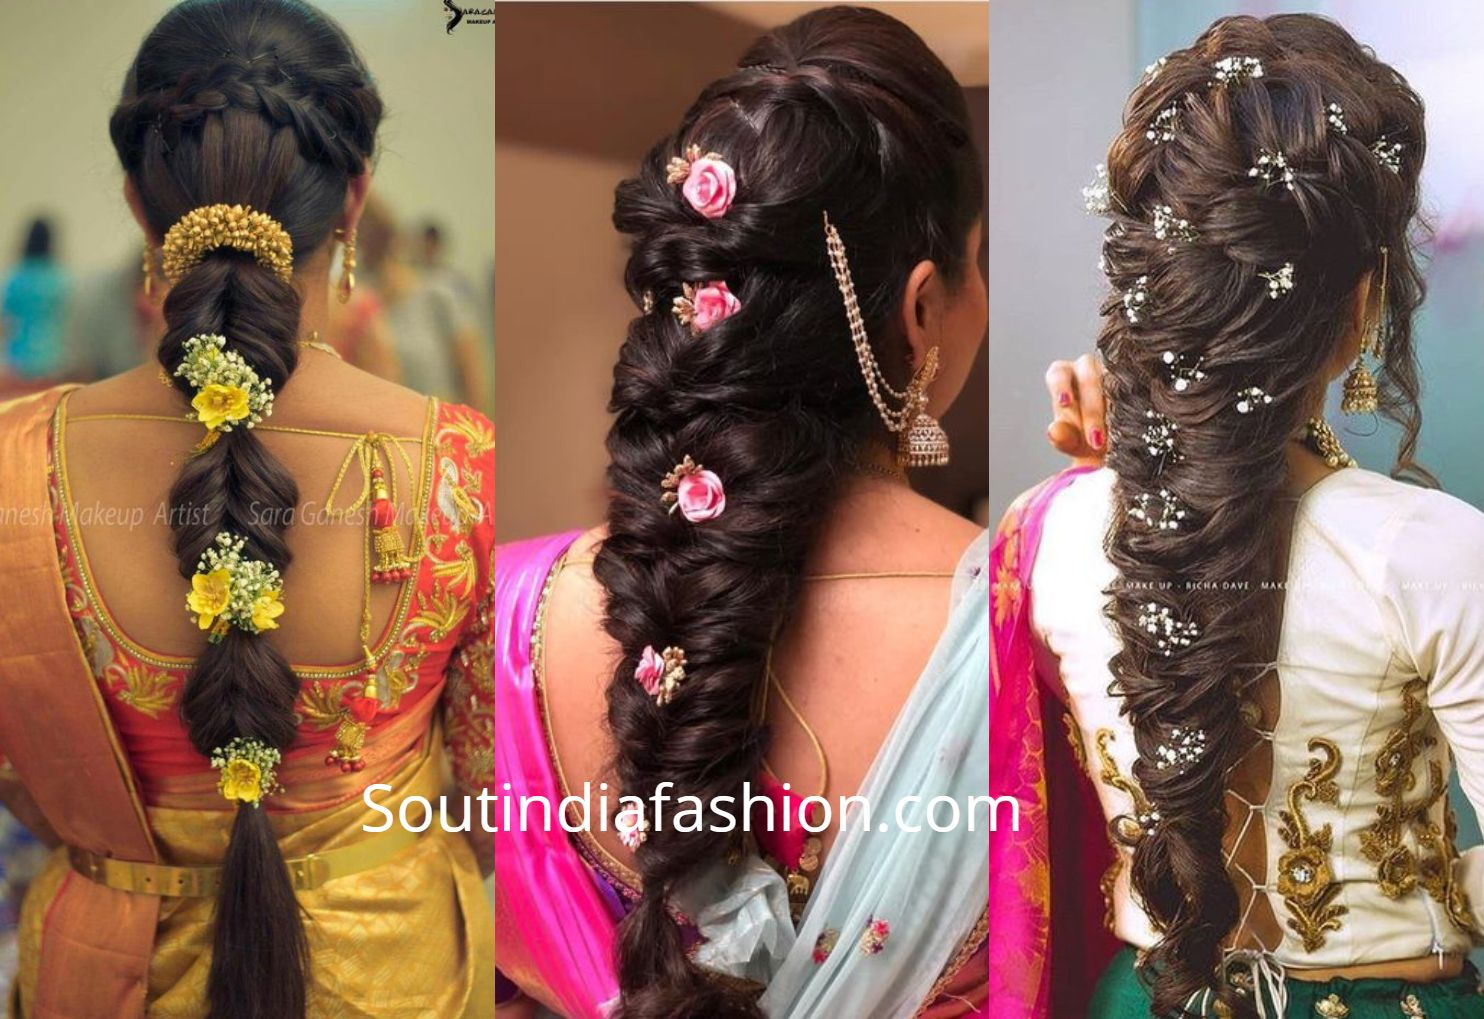 Top 10 South Indian Bridal Hairstyles For Weddings Engagement Etc Wedding Hairstyles For Long Hair Bridal Hairstyle For Reception Engagement Hairstyles